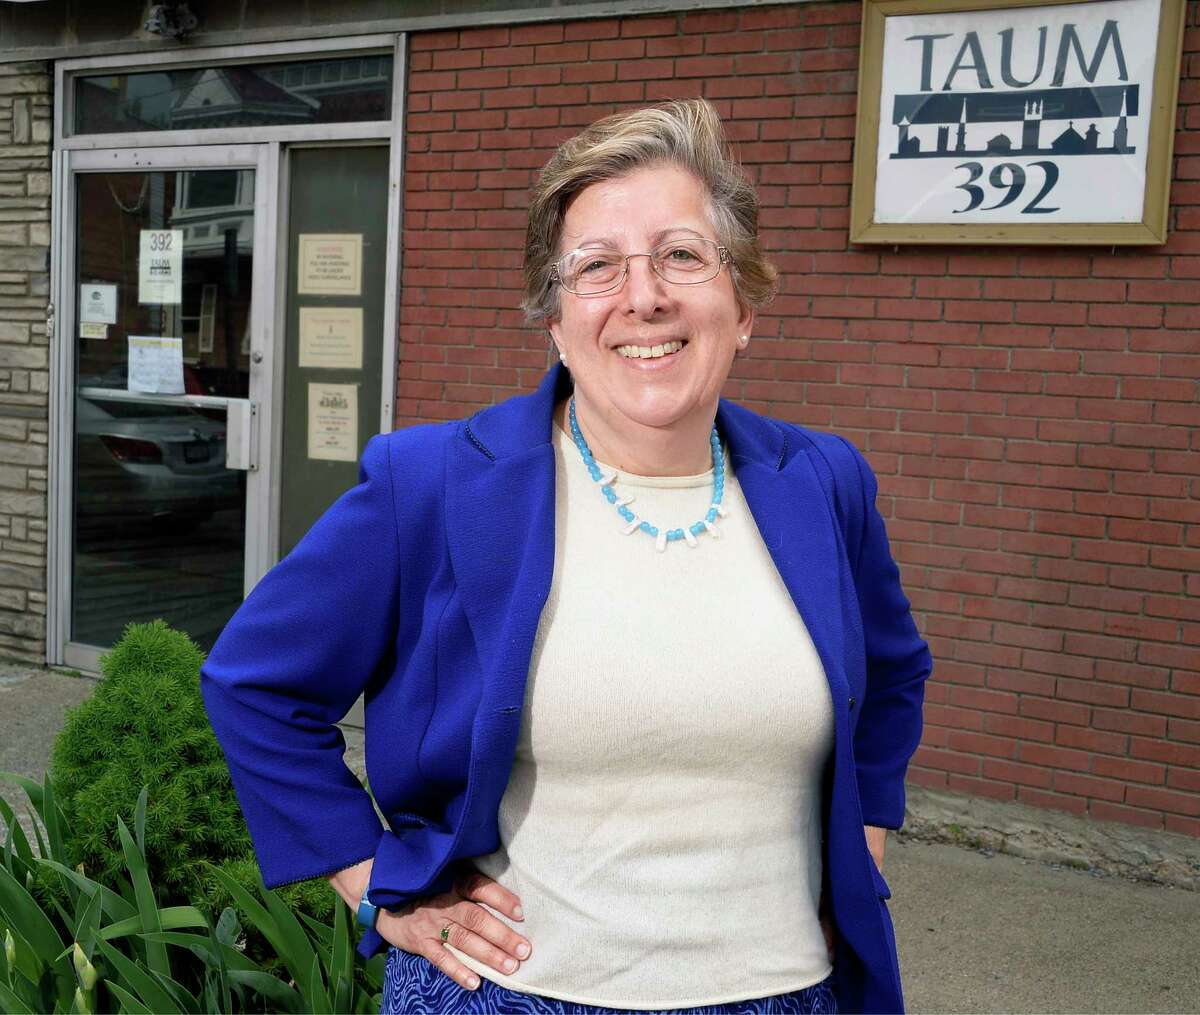 The Rev. Donna Elia outside Troy Area United Ministries Thursday May 31, 2018 in Troy, NY. (John Carl D'Annibale/Times Union)